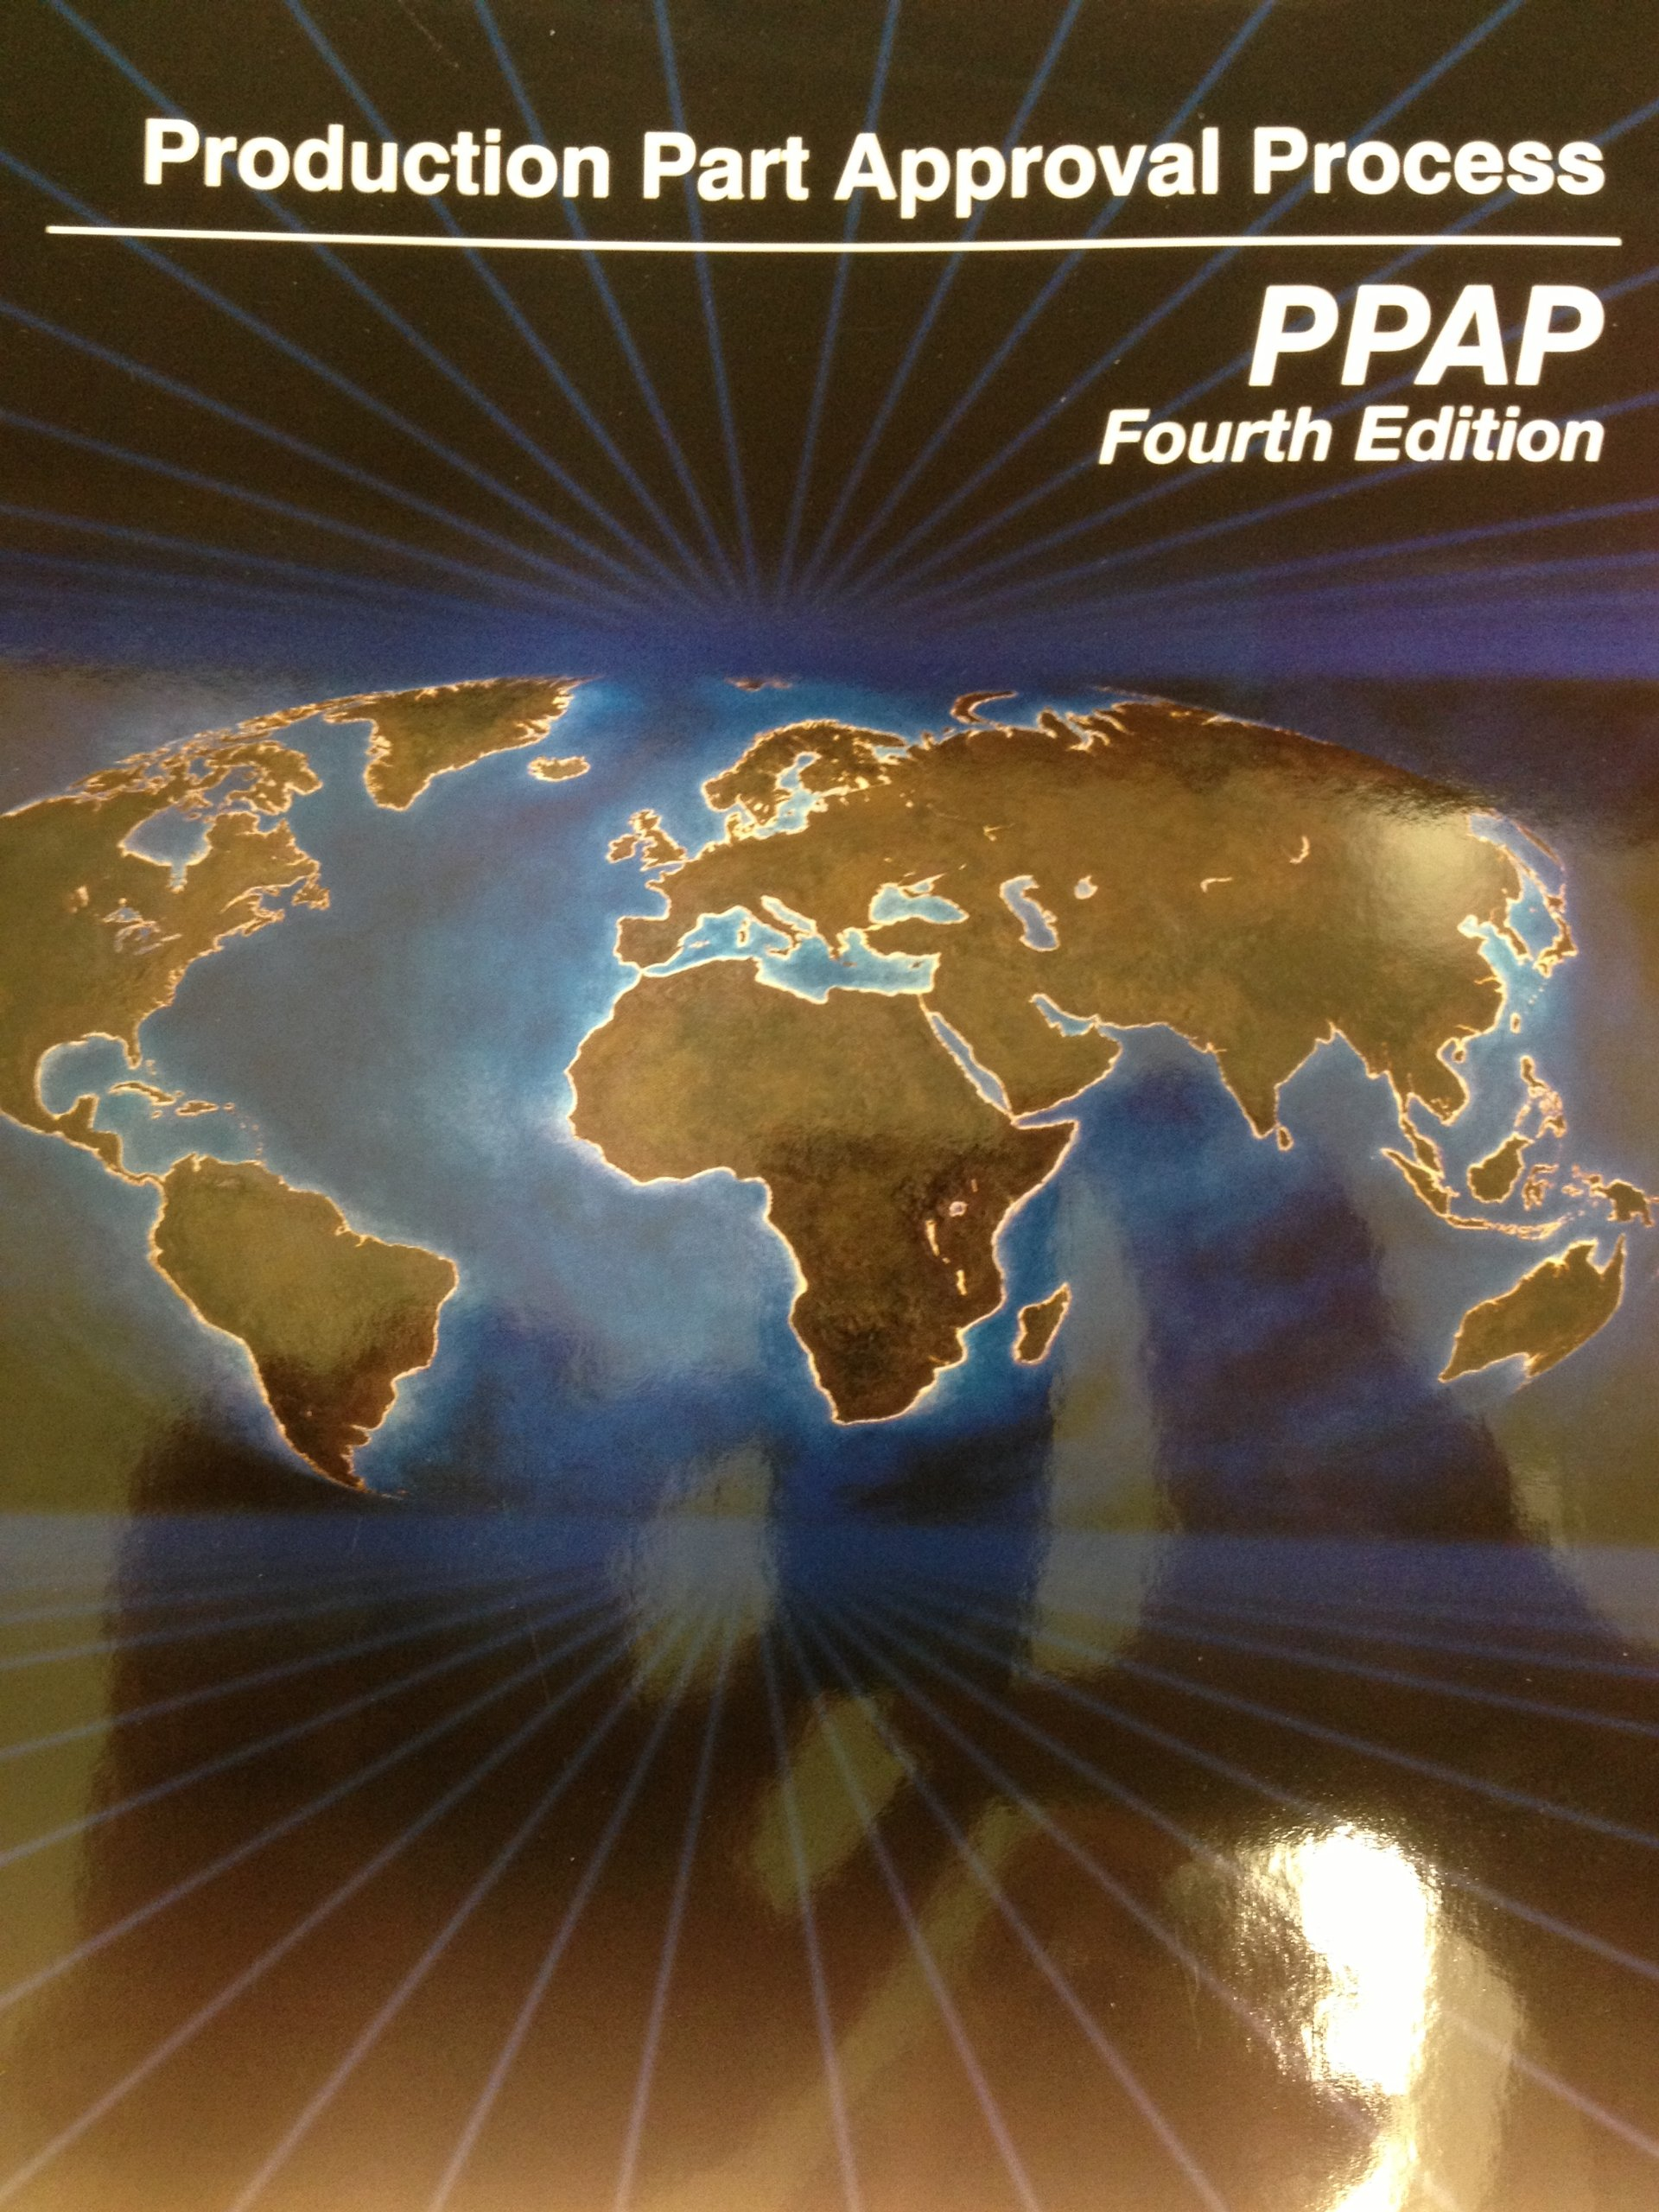 production part approval process ppap aiag 9781605340937 amazon rh amazon com aiag ppap manual 4th edition pdf free download aiag ppap manual 4th edition pdf free download